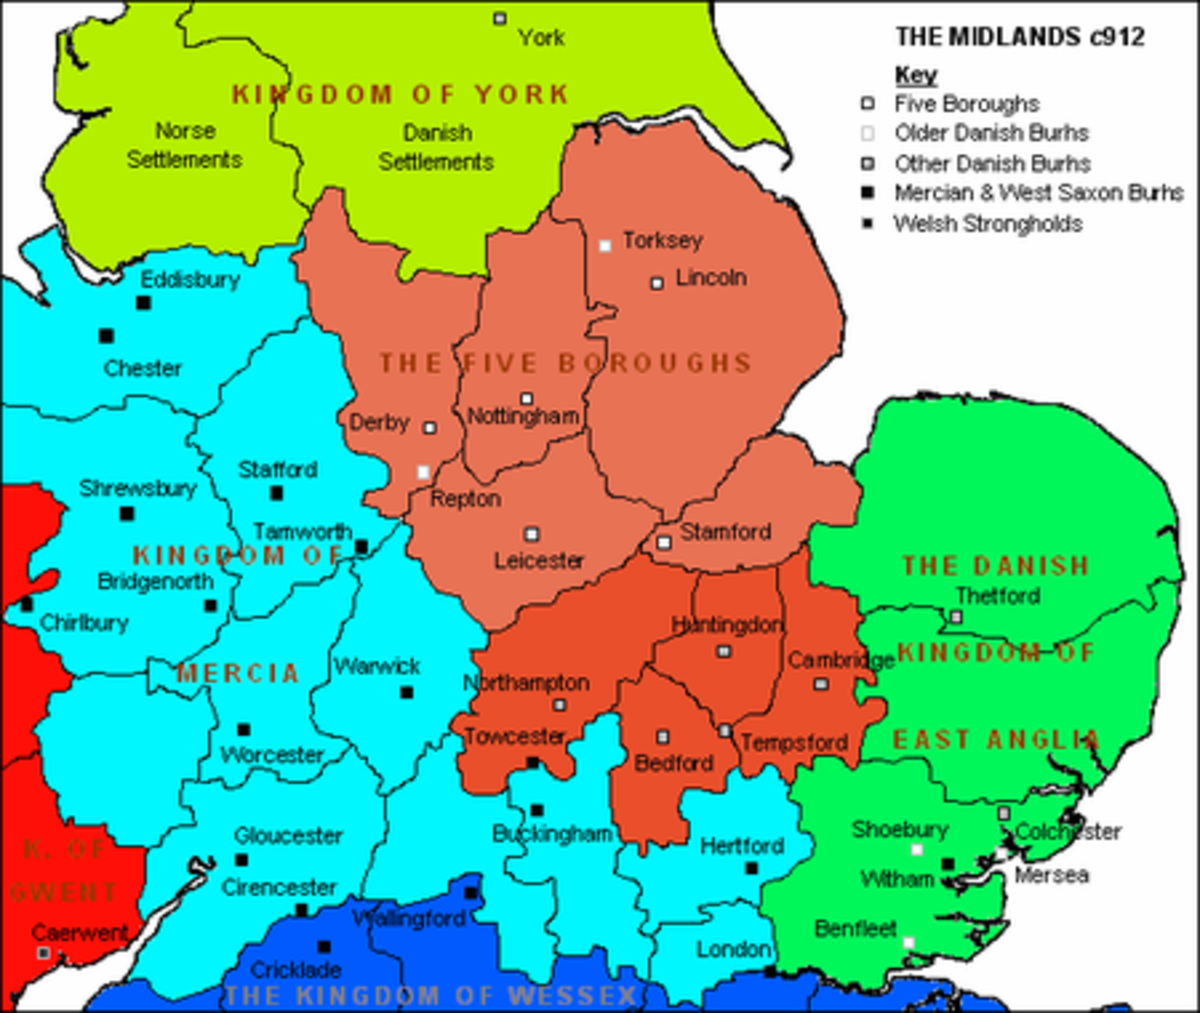 Danish division. Eastern Mercia,  East Anglia and Northumbria north to the Tees came under Danish rule in the 9th Century after agreement between Guthrum and Aelfred. Colonisation had reached the Anglo-Saxon kingdoms.